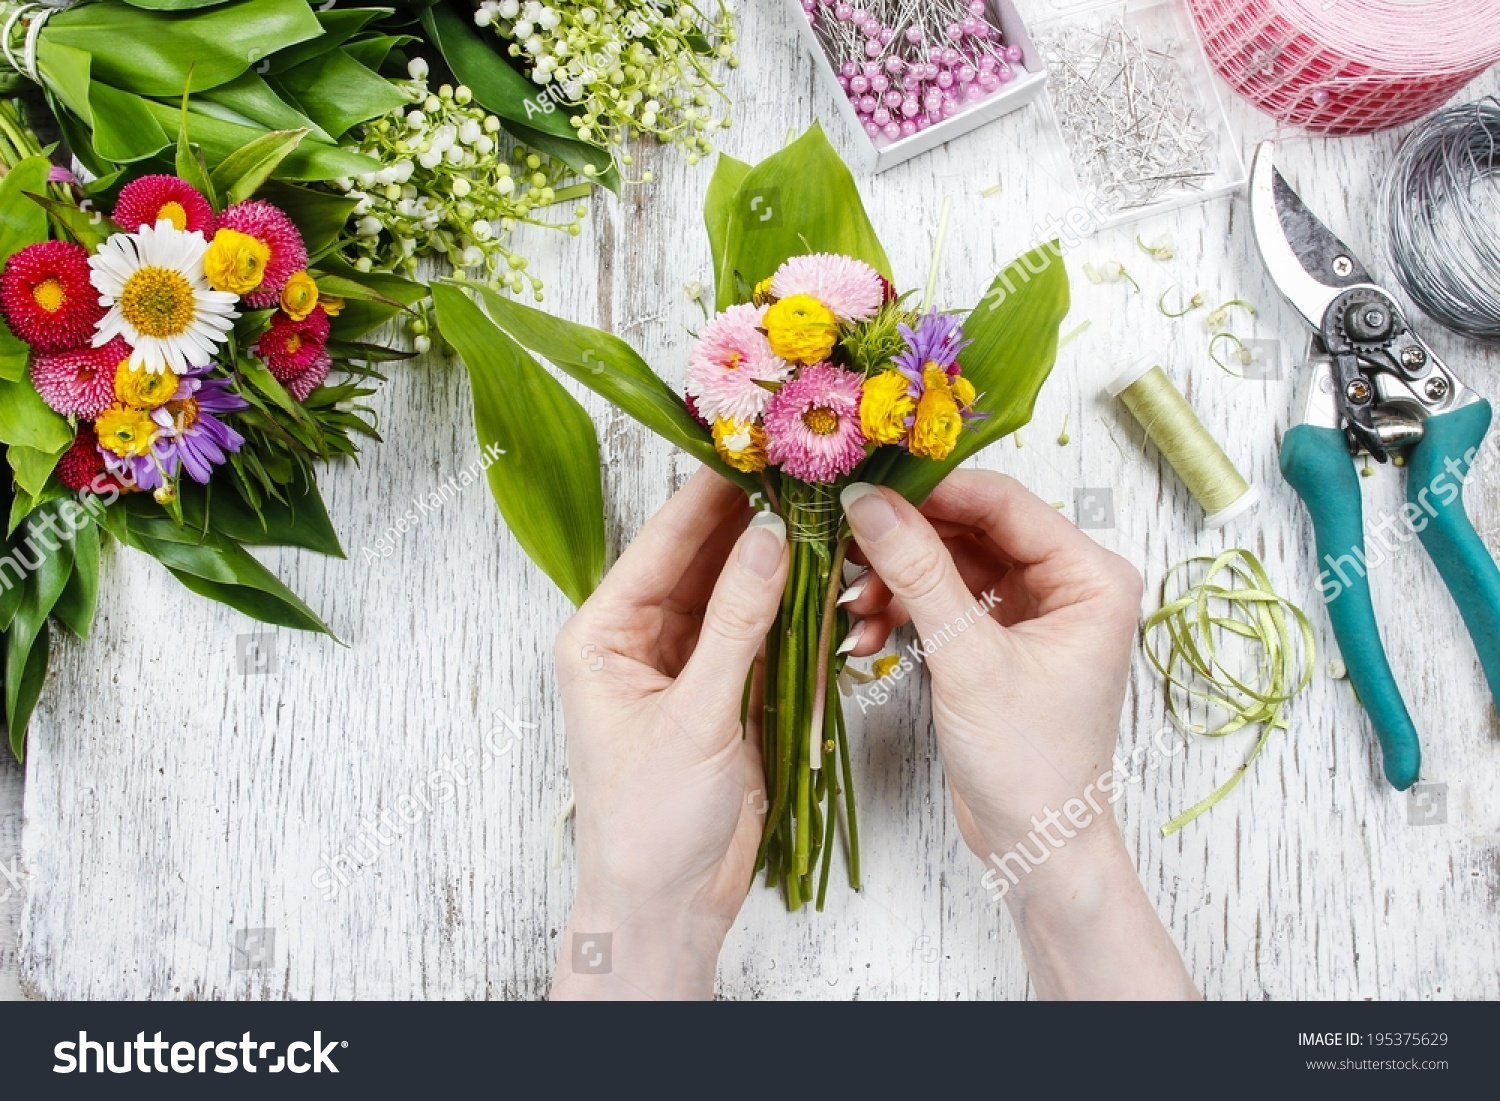 Florist at work woman making bouquet of wild flowers ez canvas id 195375629 izmirmasajfo